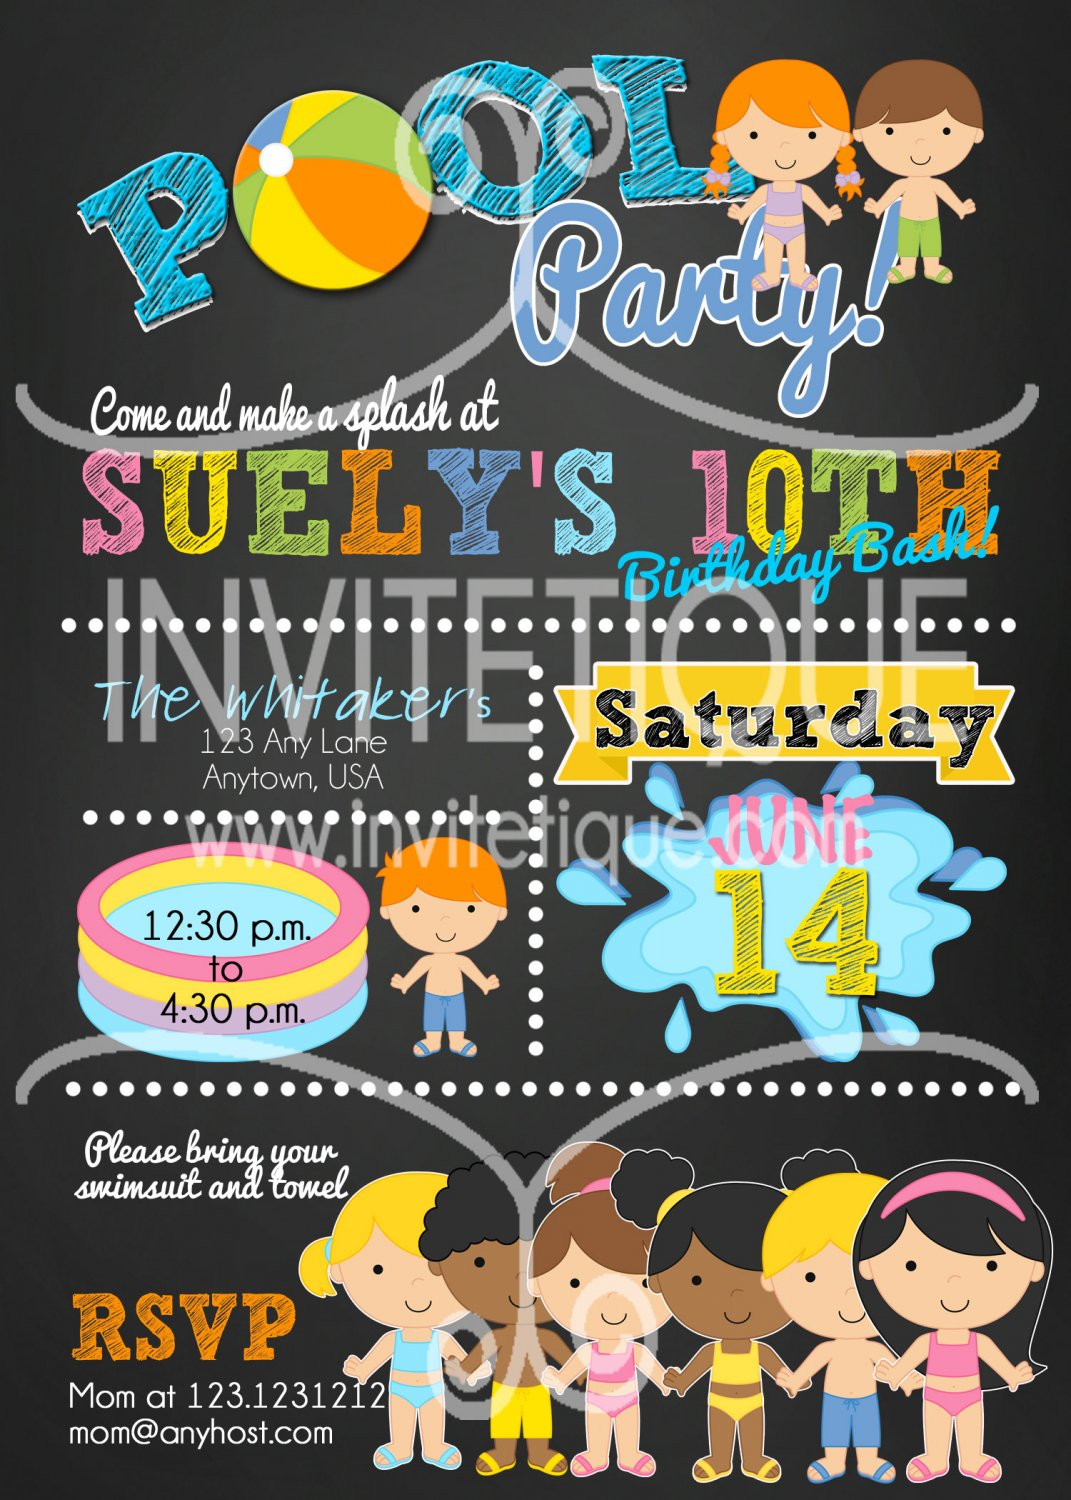 Kids Pool Party Birthday Bash Invitation, End of School Bash, Summer Party Invitation